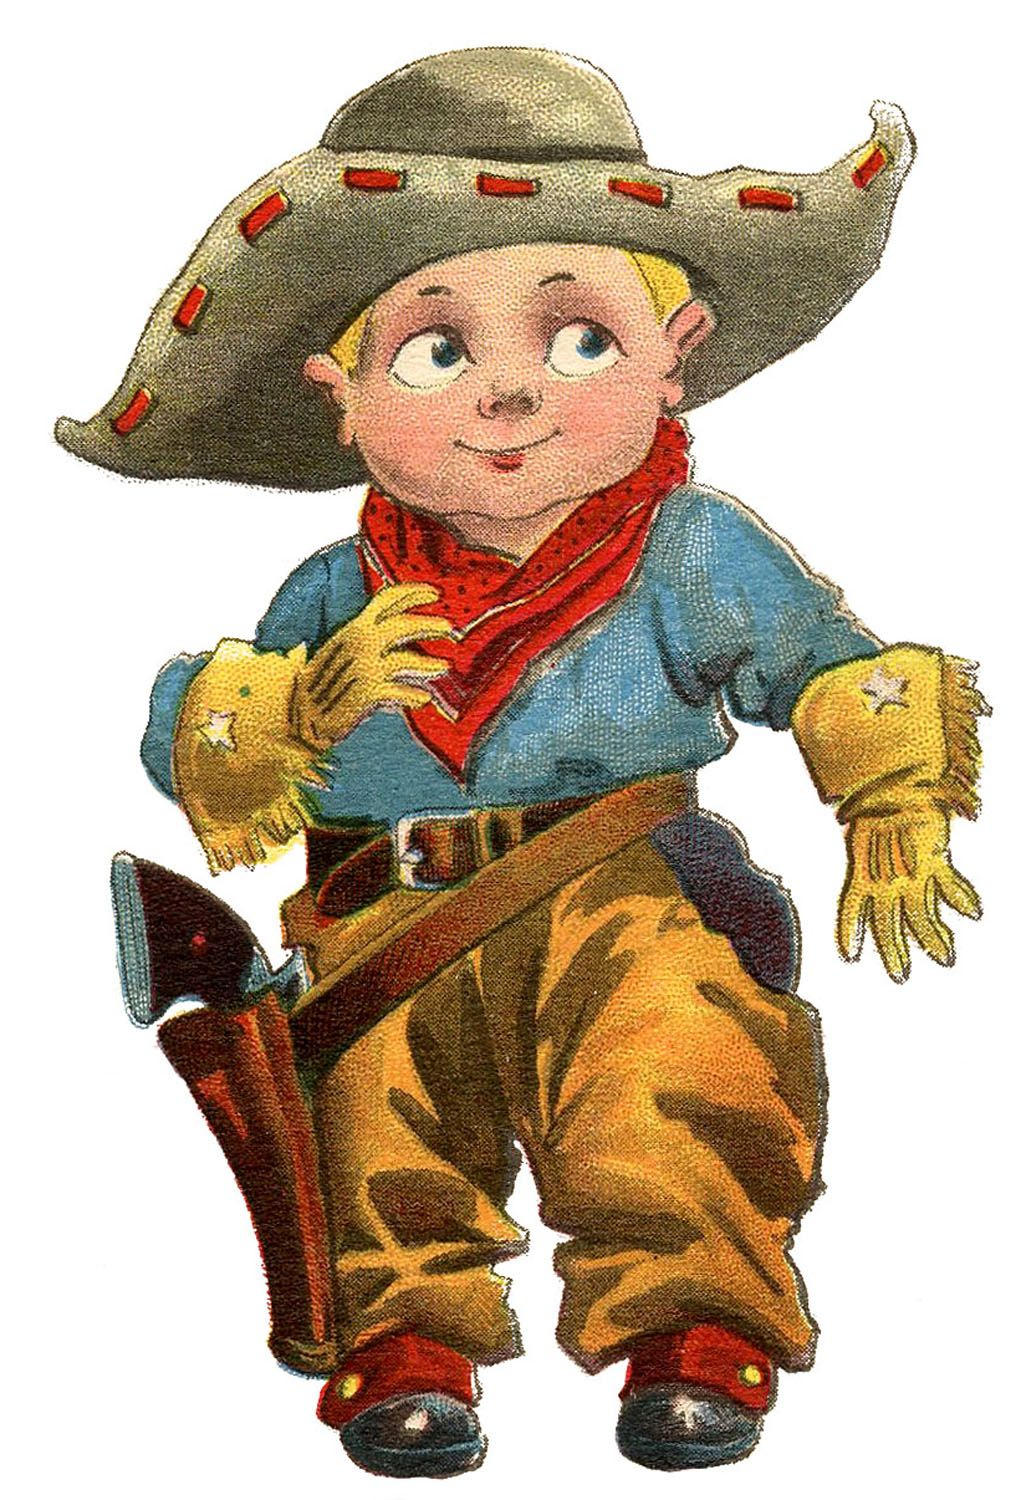 Vintage Clip Art - Cute LIttle Cowboy | Dress up, Vintage and Count